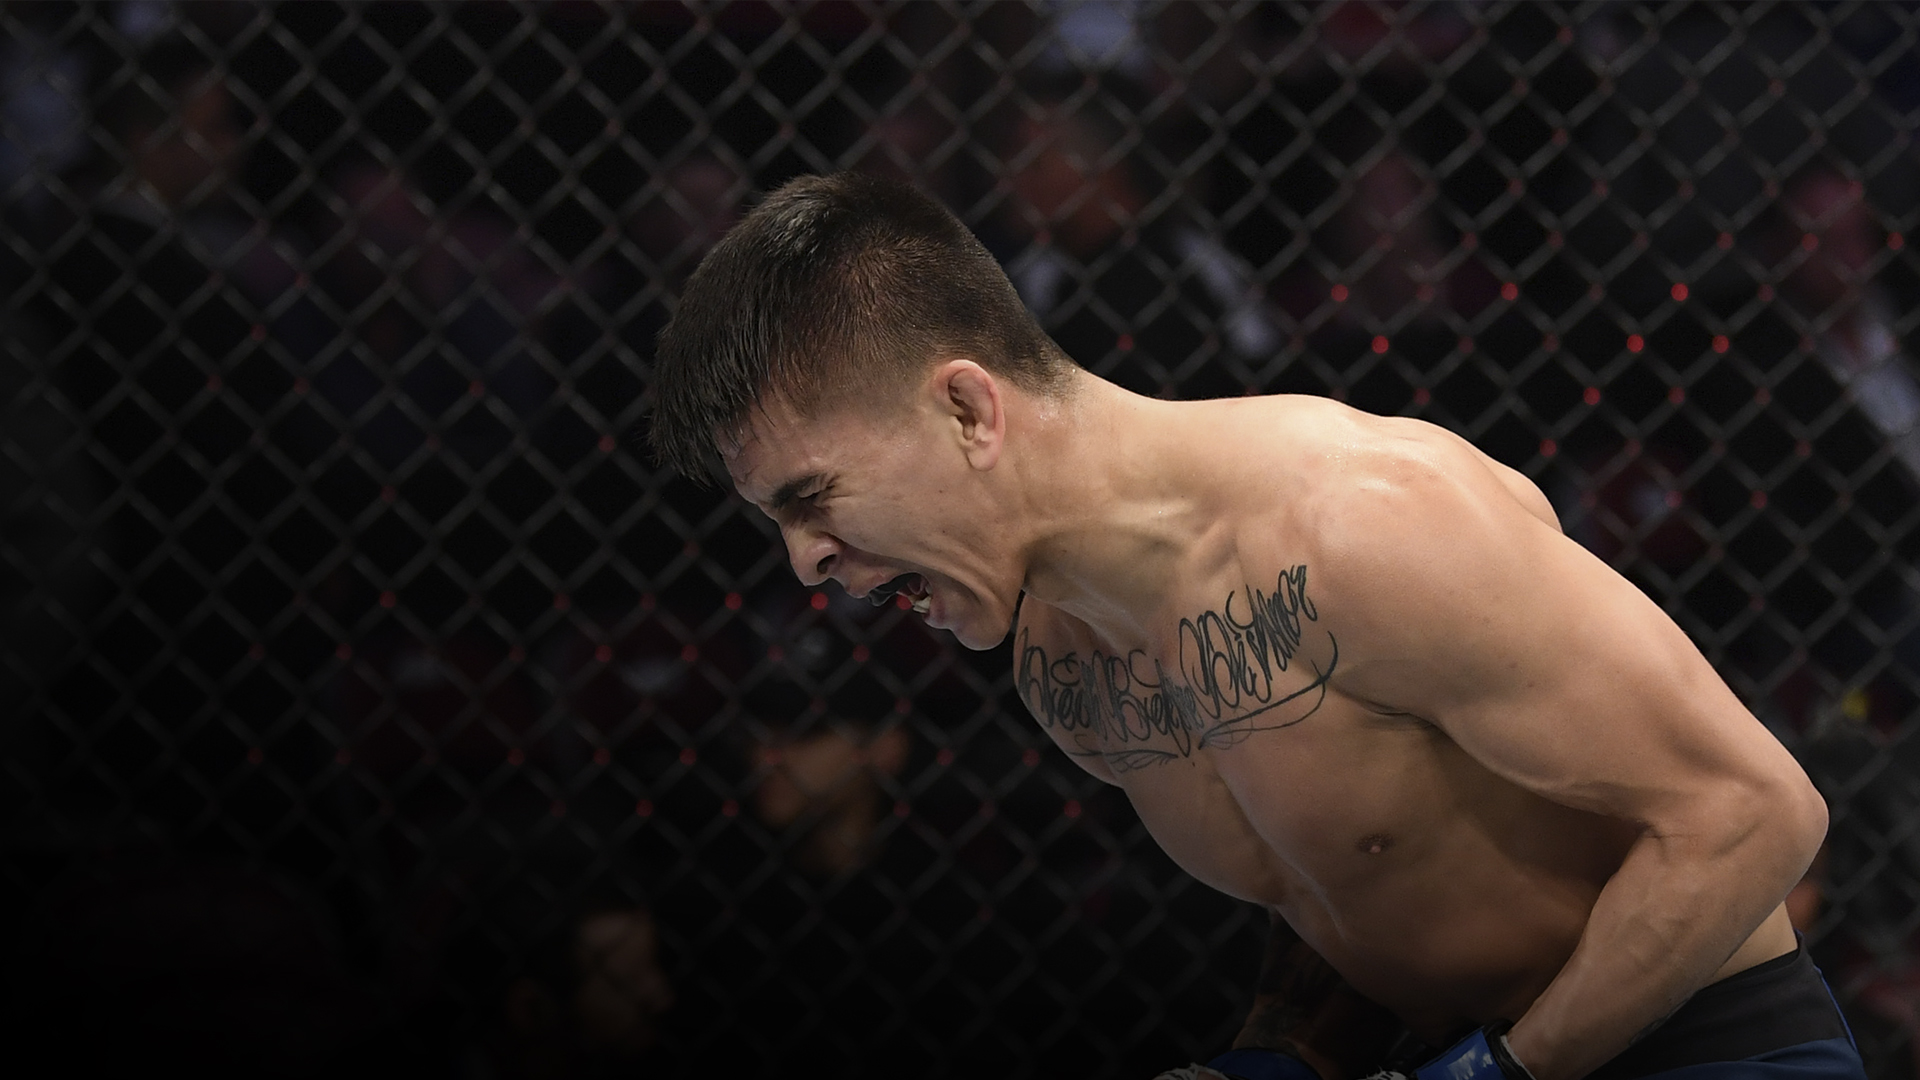 Mario Bautista celebrates his TKO victory over Miles Johns in their bantamweight bout during the UFC 247 event at Toyota Center on February 08, 2020 in Houston, Texas. (Photo by Josh Hedges/Zuffa LLC)